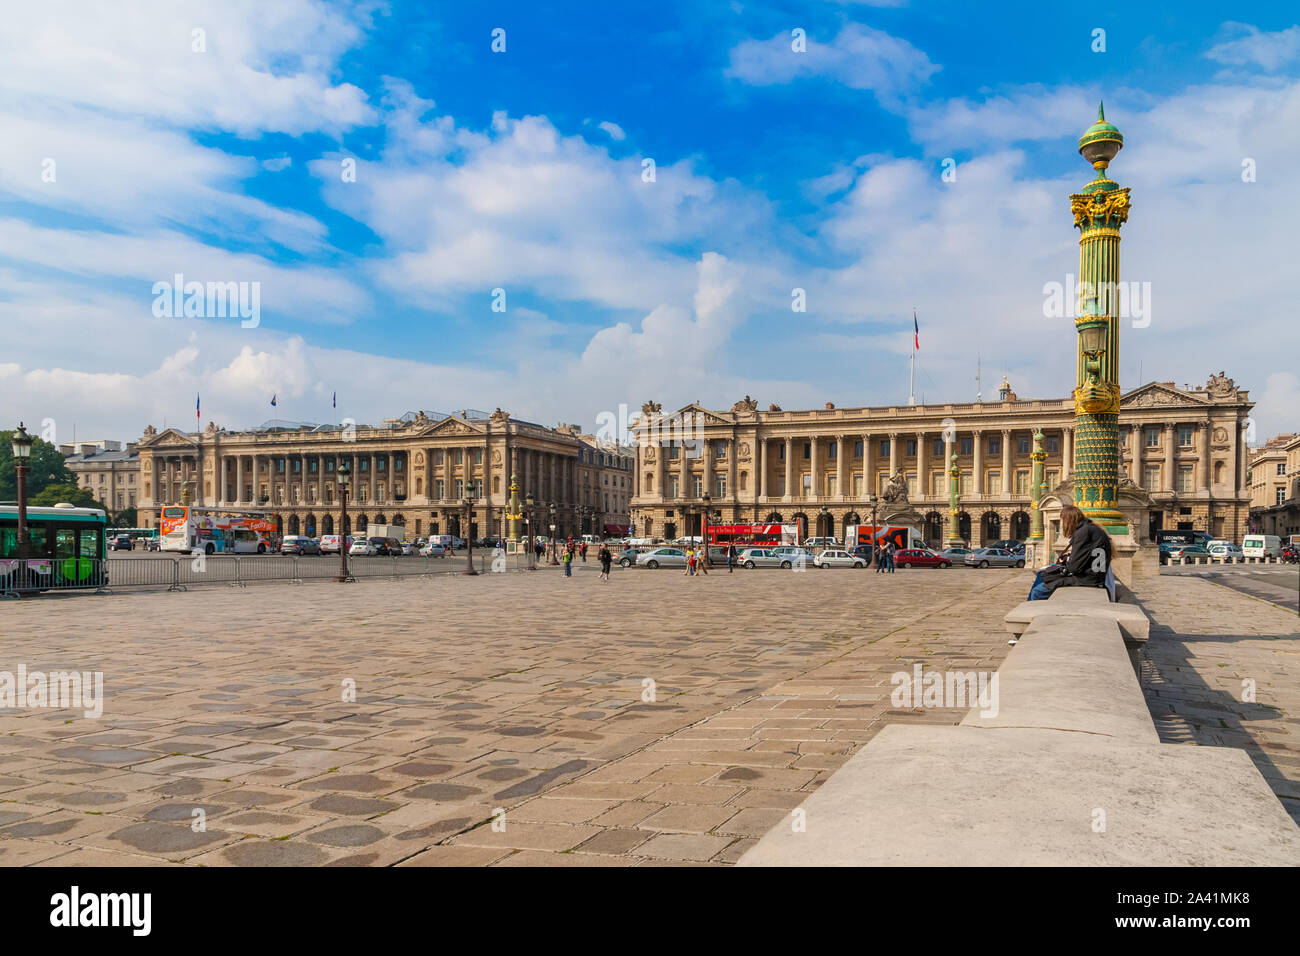 Nice panoramic view of the famous public square Place de la Concorde in Paris with the two identical stone palaces and the Rue Royal in the background. Stock Photo